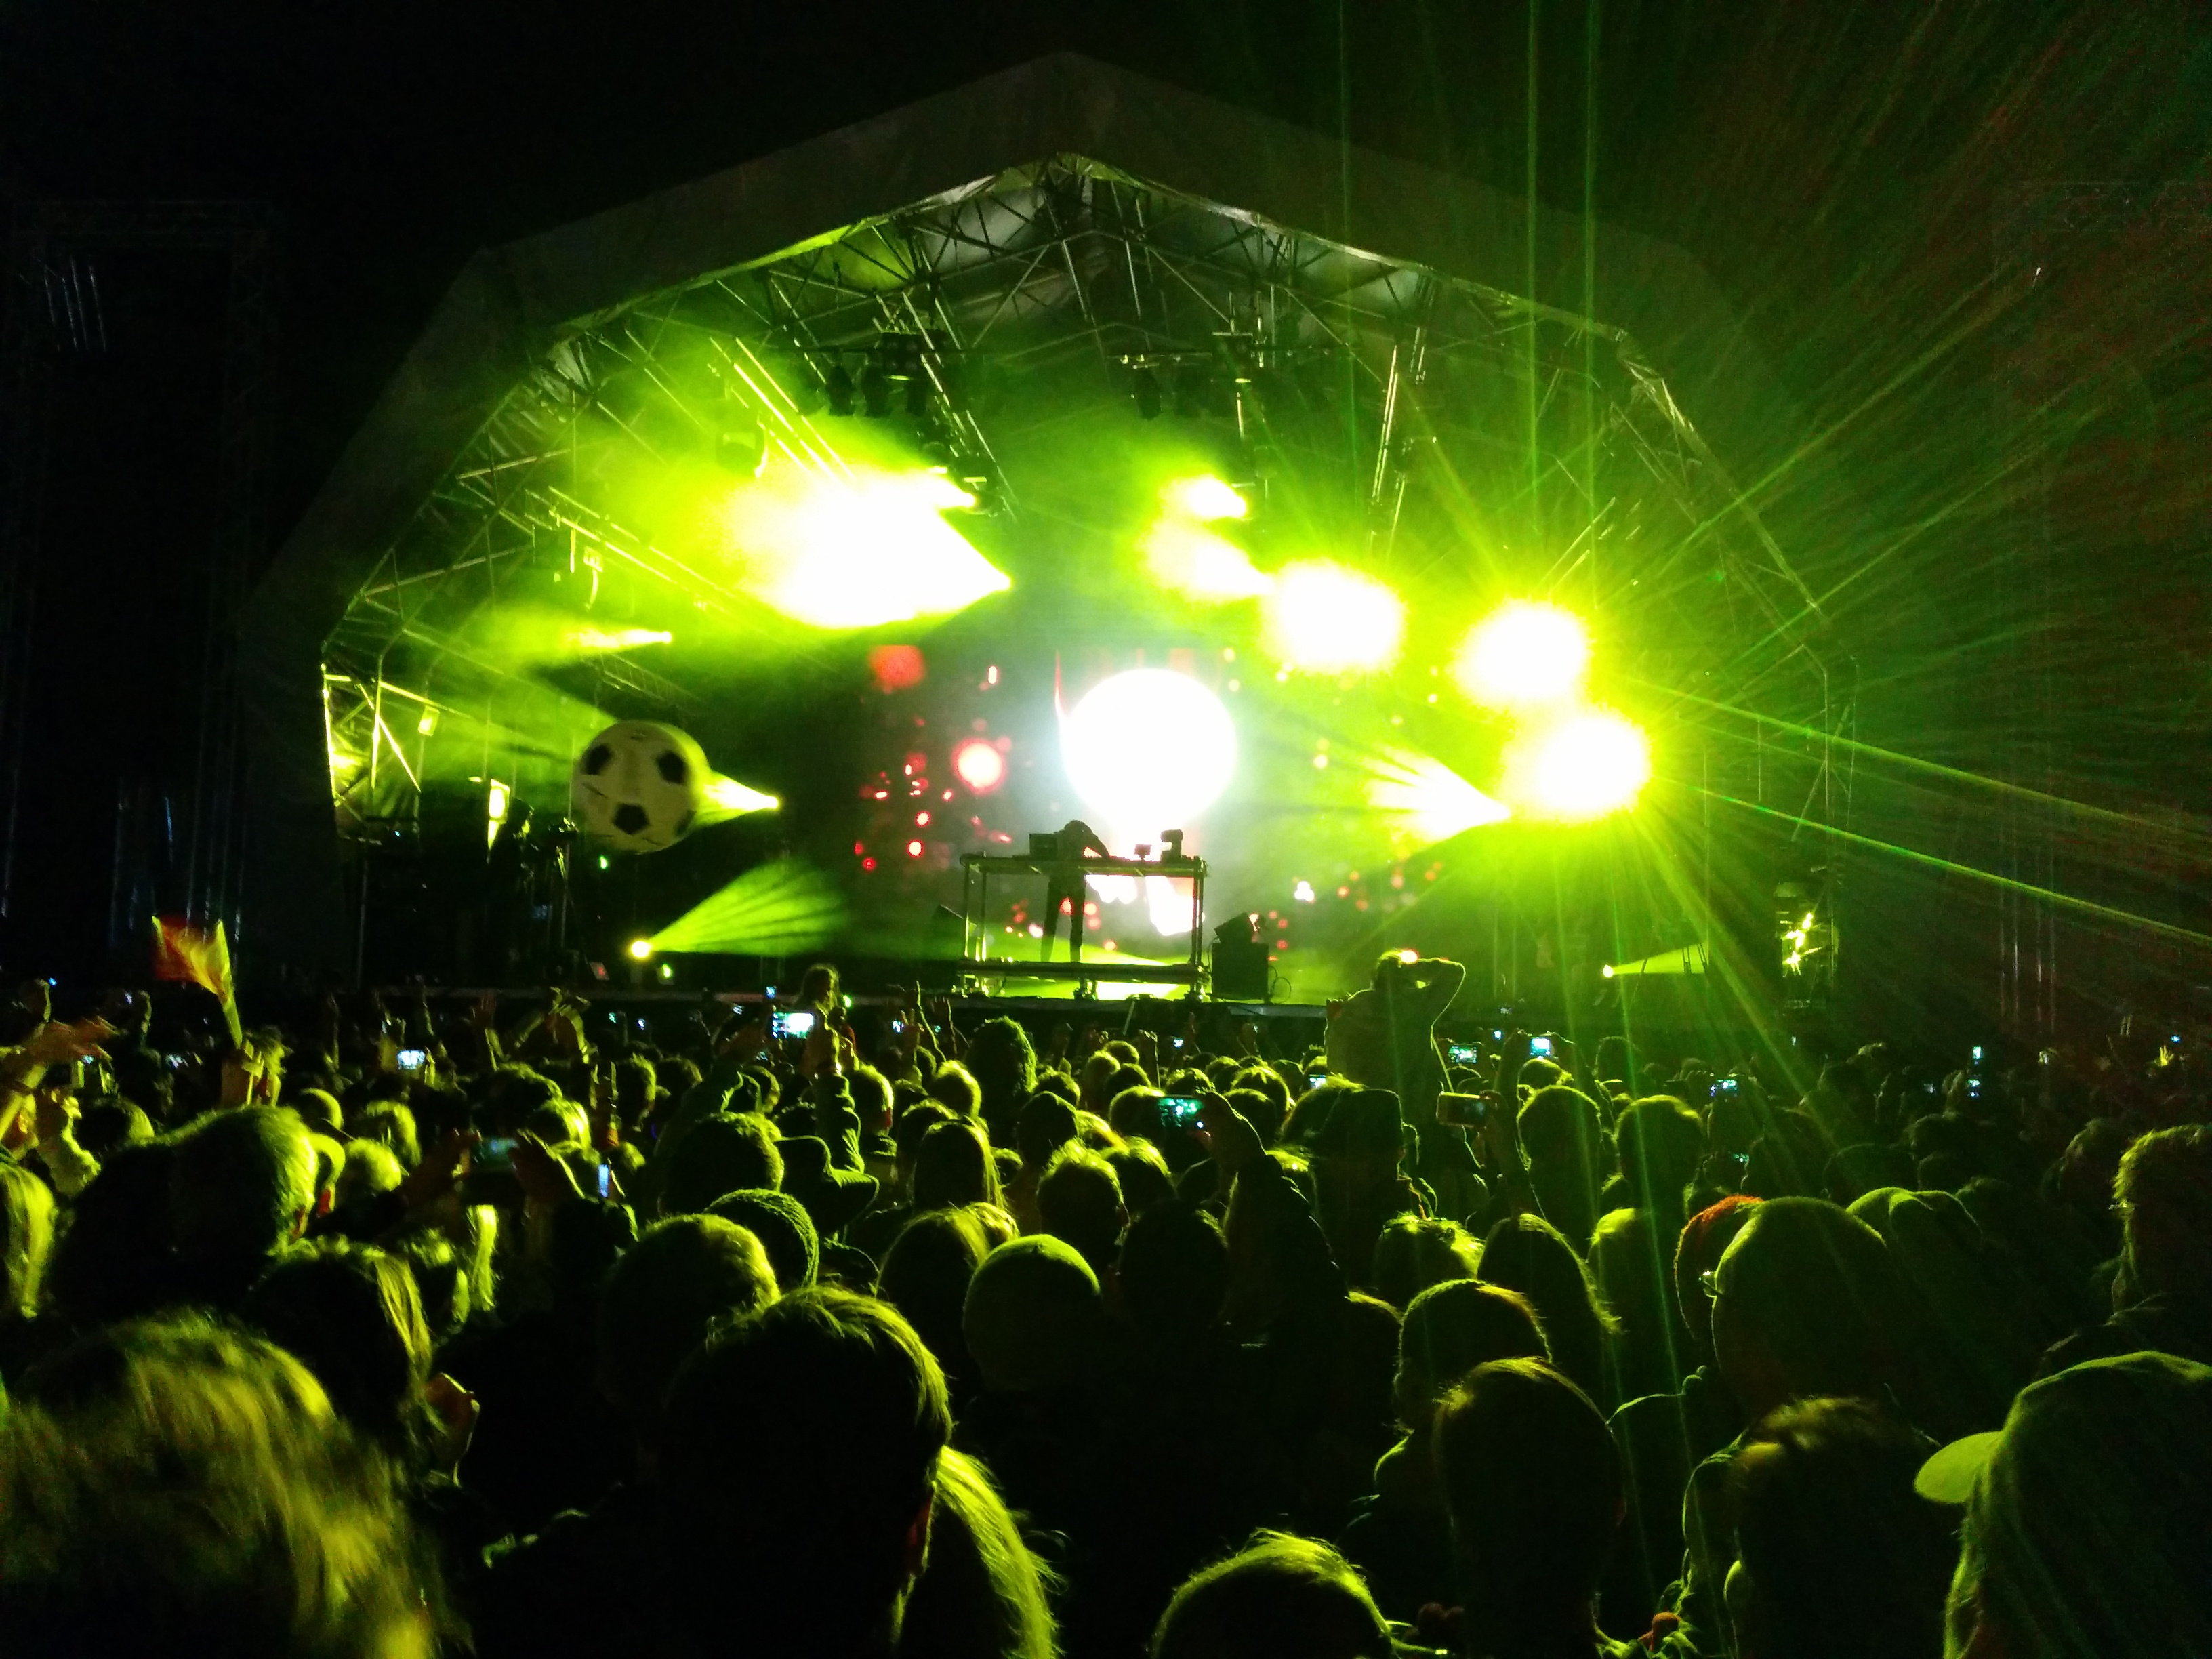 View of the main stage with Fatboy Slim playing